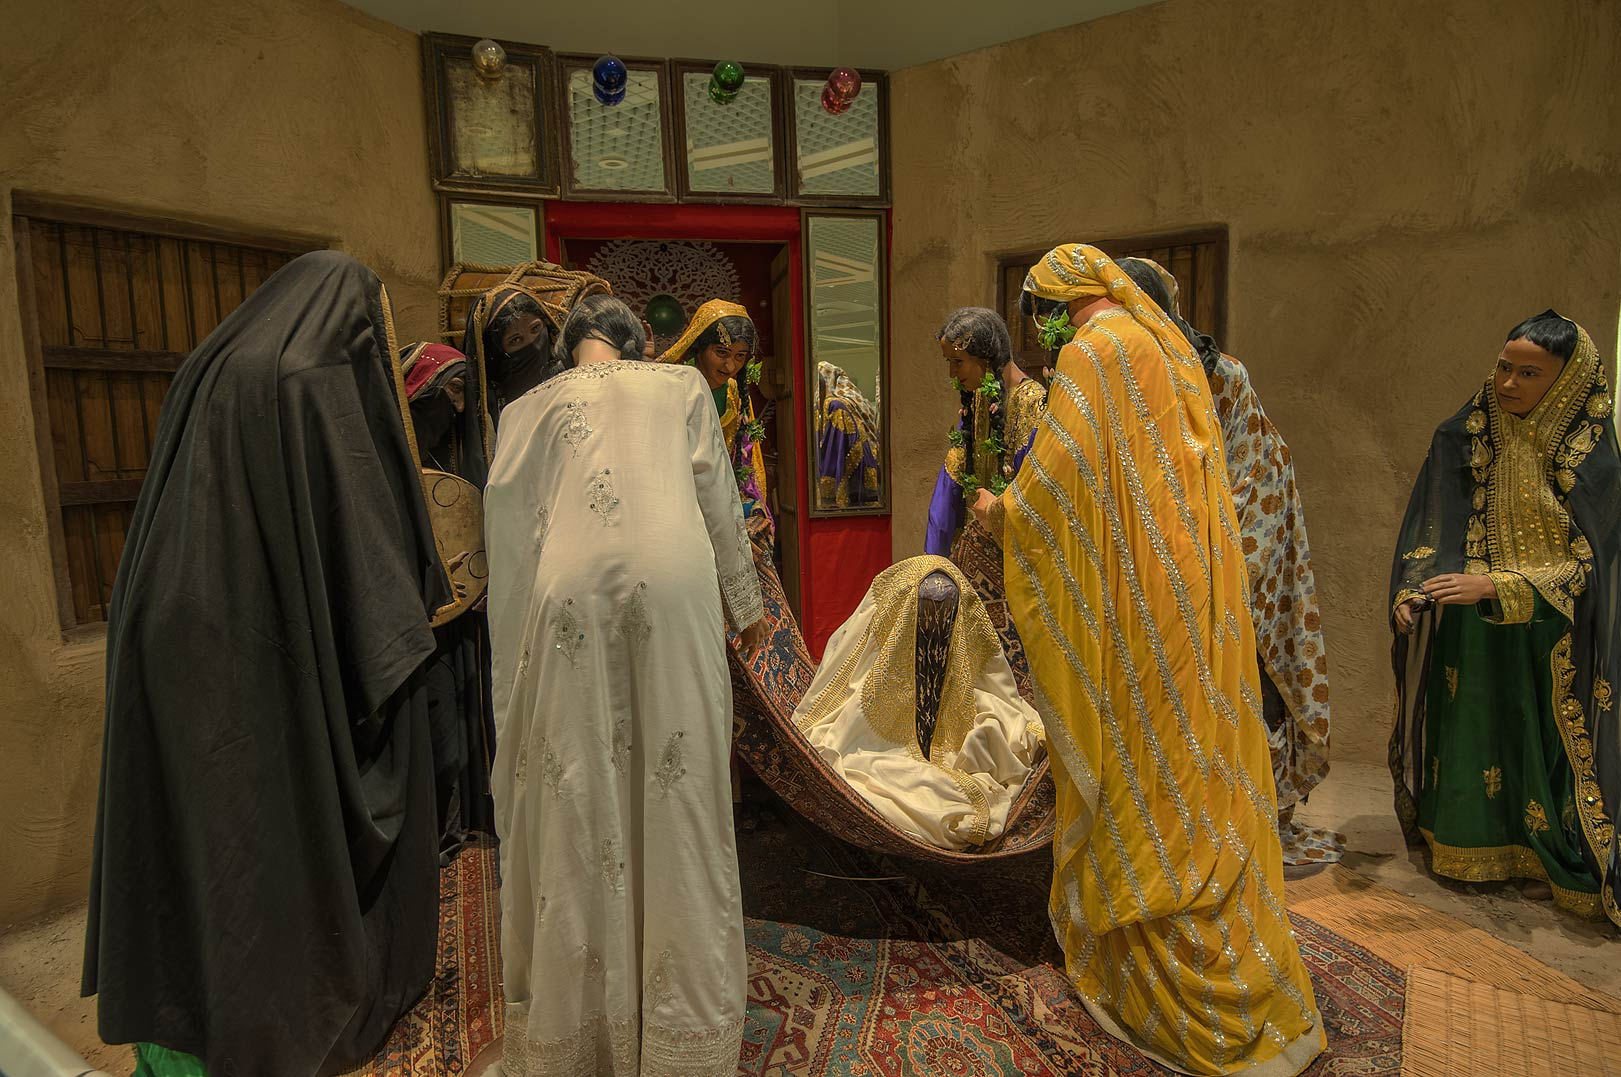 Exhibition of wedding traditions in Bahrain National Museum. Manama, Bahrain